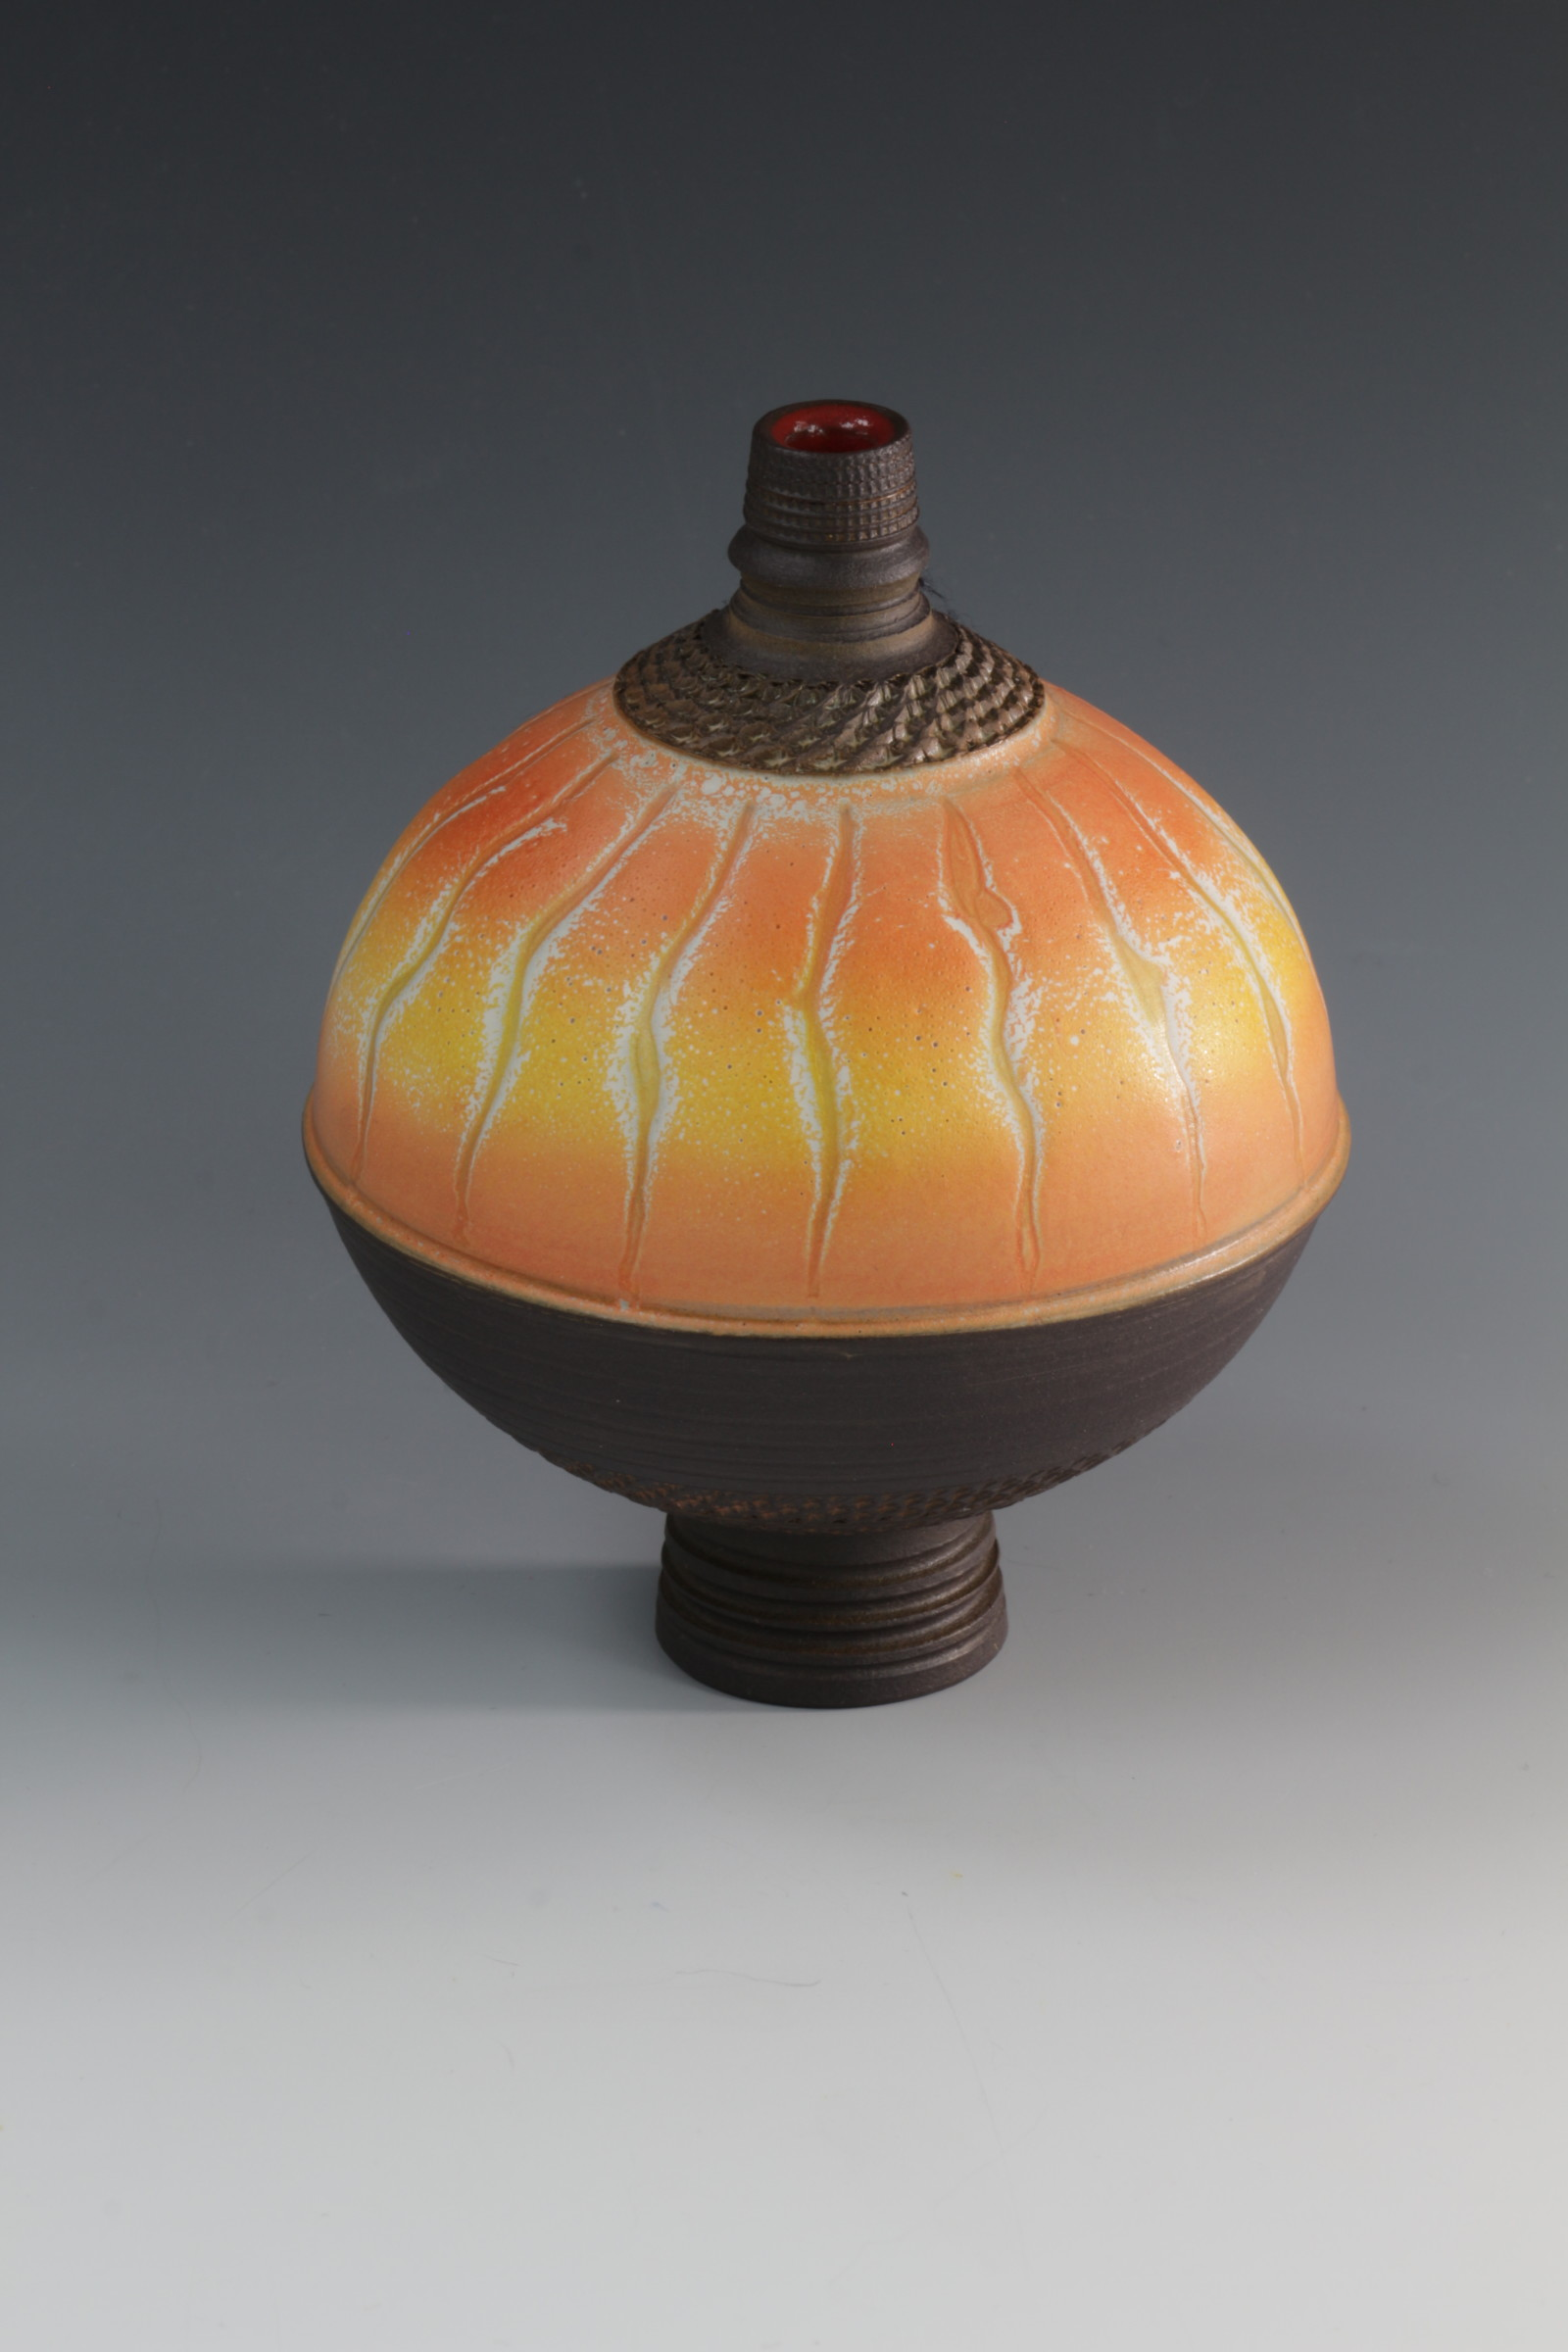 "<span class=""link fancybox-details-link""><a href=""/artists/61-geoffrey-swindell/works/6900-geoffrey-swindell-bud-vase-2020/"">View Detail Page</a></span><div class=""artist""><strong>Geoffrey Swindell</strong></div> <div class=""title""><em>Bud Vase</em>, 2020</div> <div class=""medium"">Porcelain</div><div class=""price"">£170.00</div><div class=""copyright_line"">Copyright The Artist</div>"